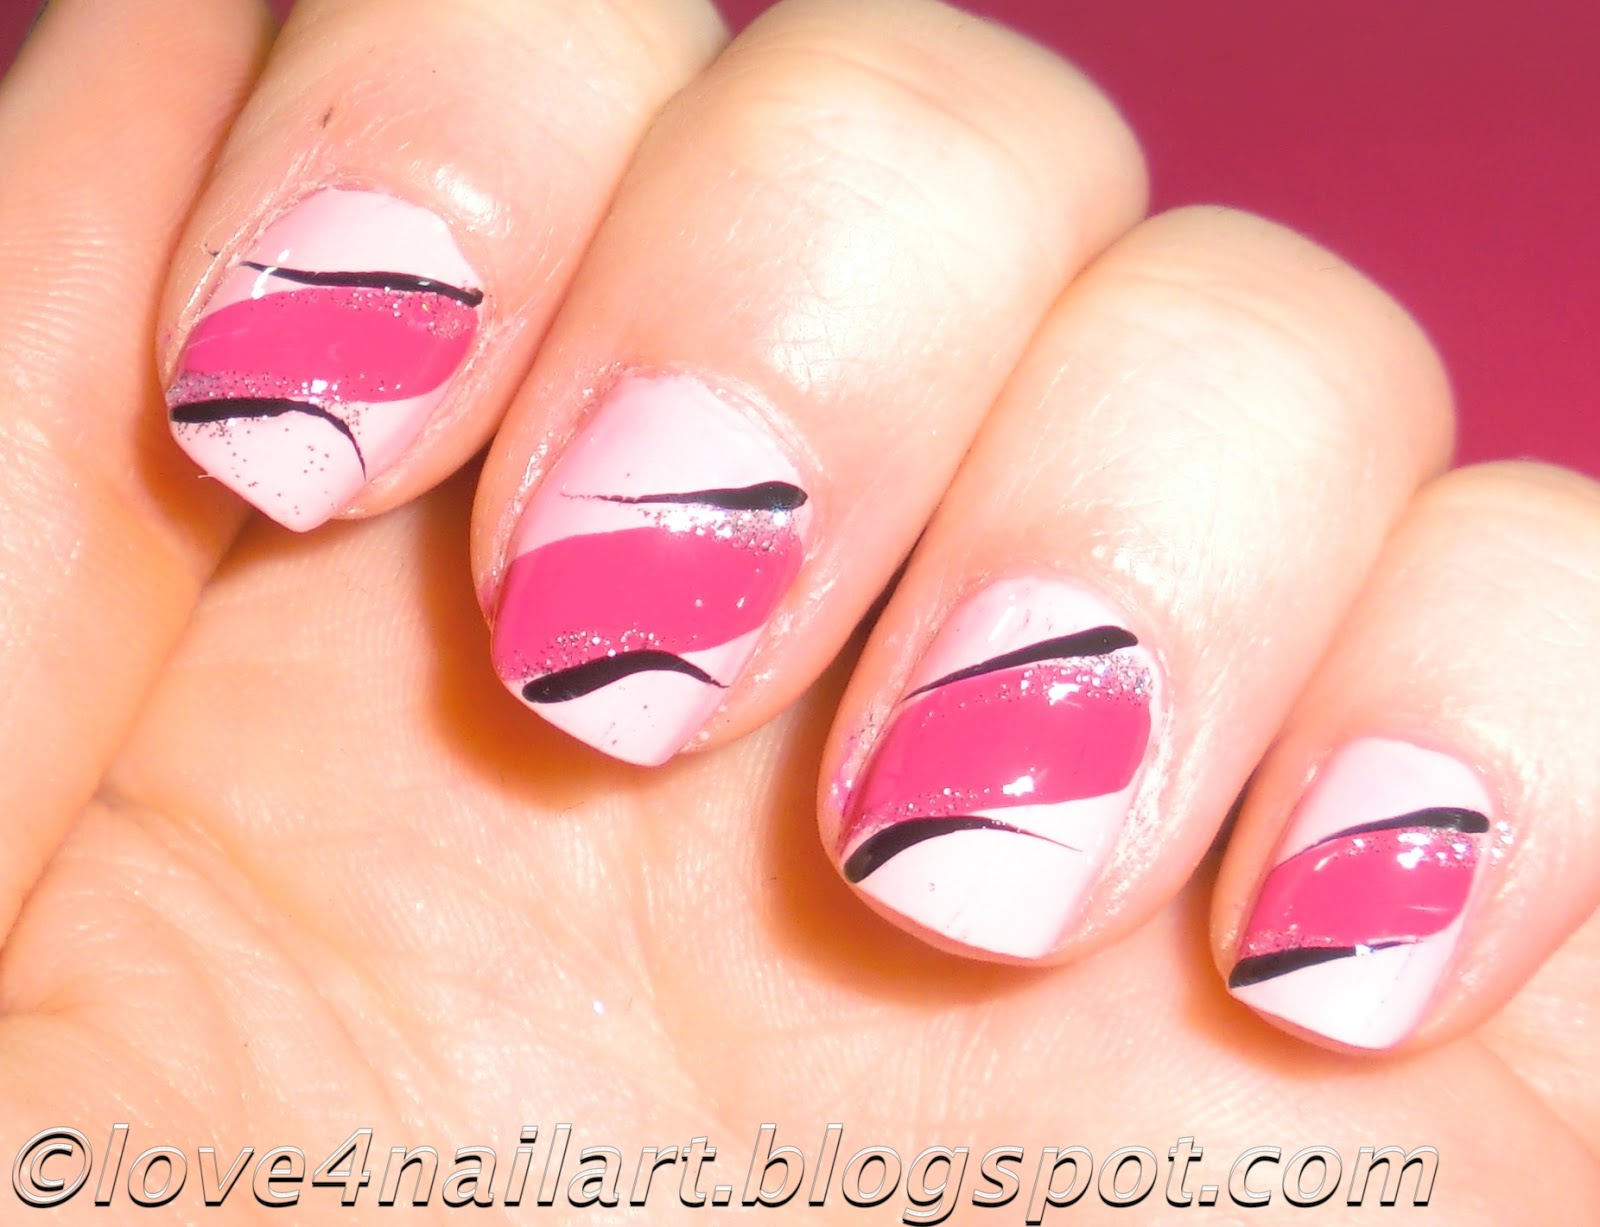 Nail Designs On Pink Nails | Nail Art Designs